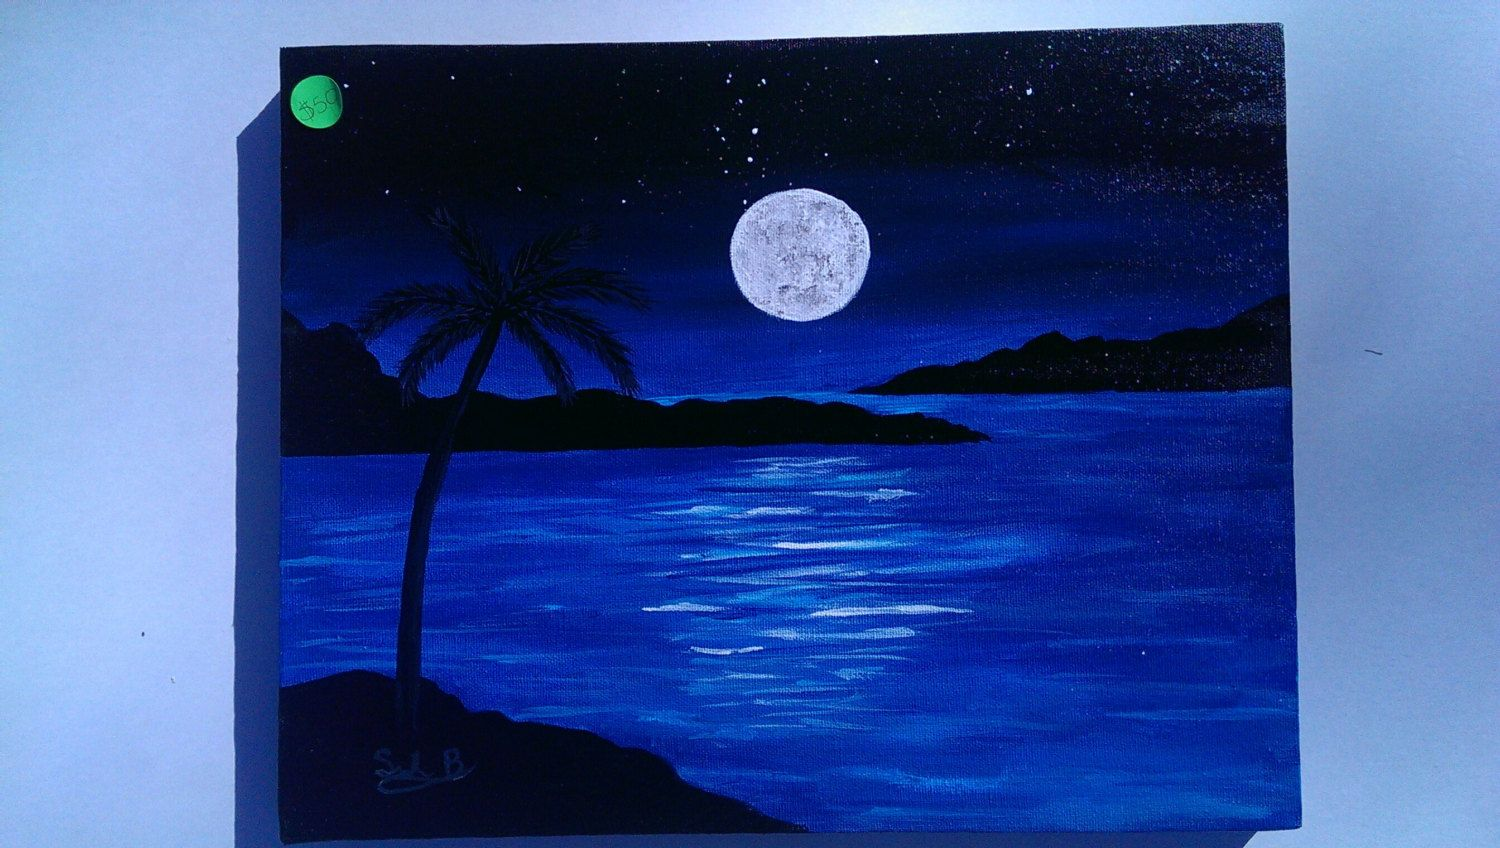 Acrylic Nighttime Ocean Painting 11 X 14 By Spectrumstudiosart On Etsy Ocean Painting Painting Landscape Paintings